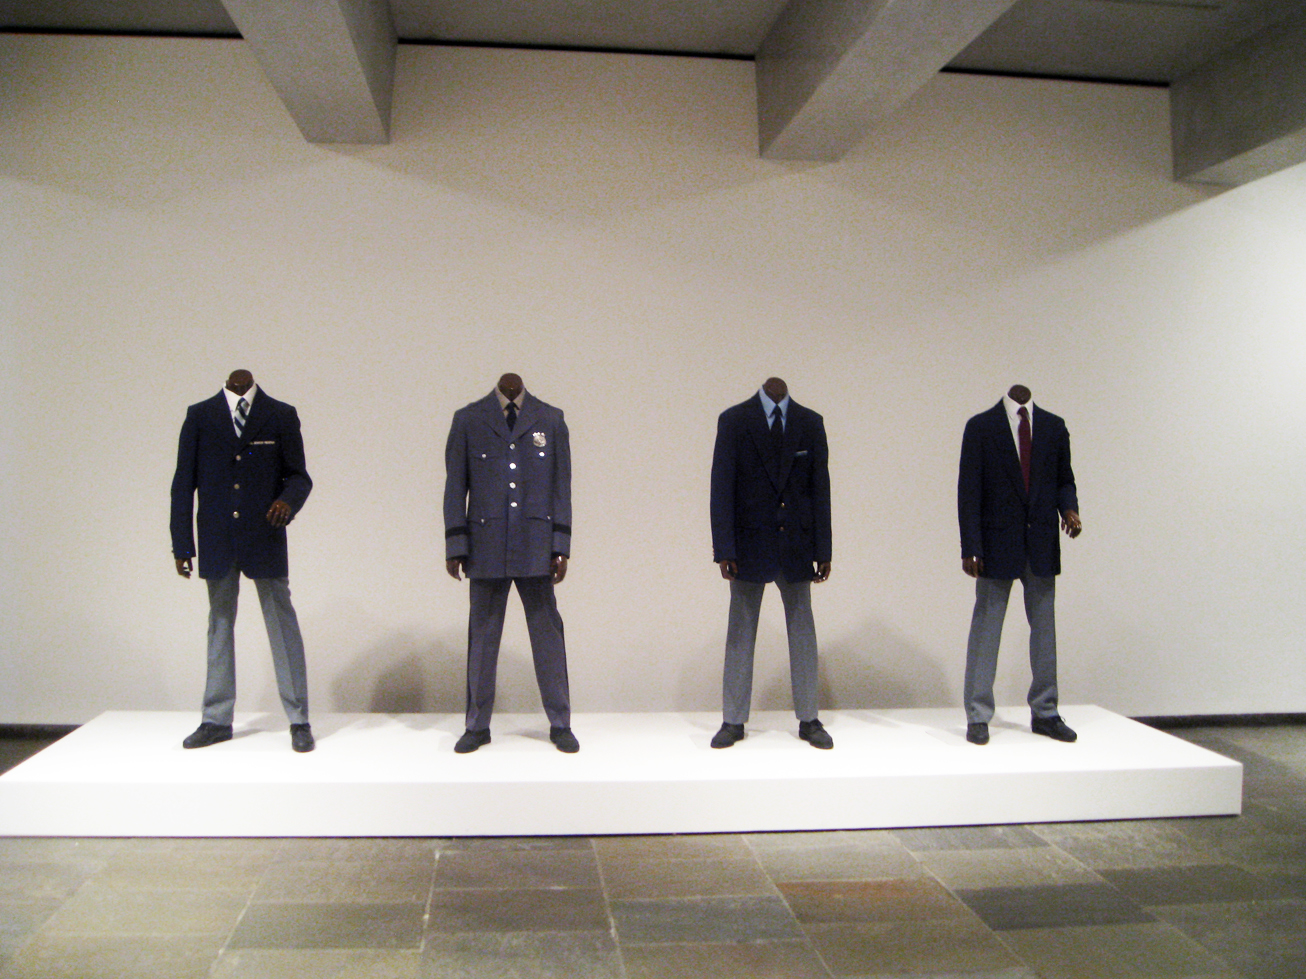 Black headless mannequins dressed as museum guards, from Fred Wilson's Guarded View. Image from Arts Observer.